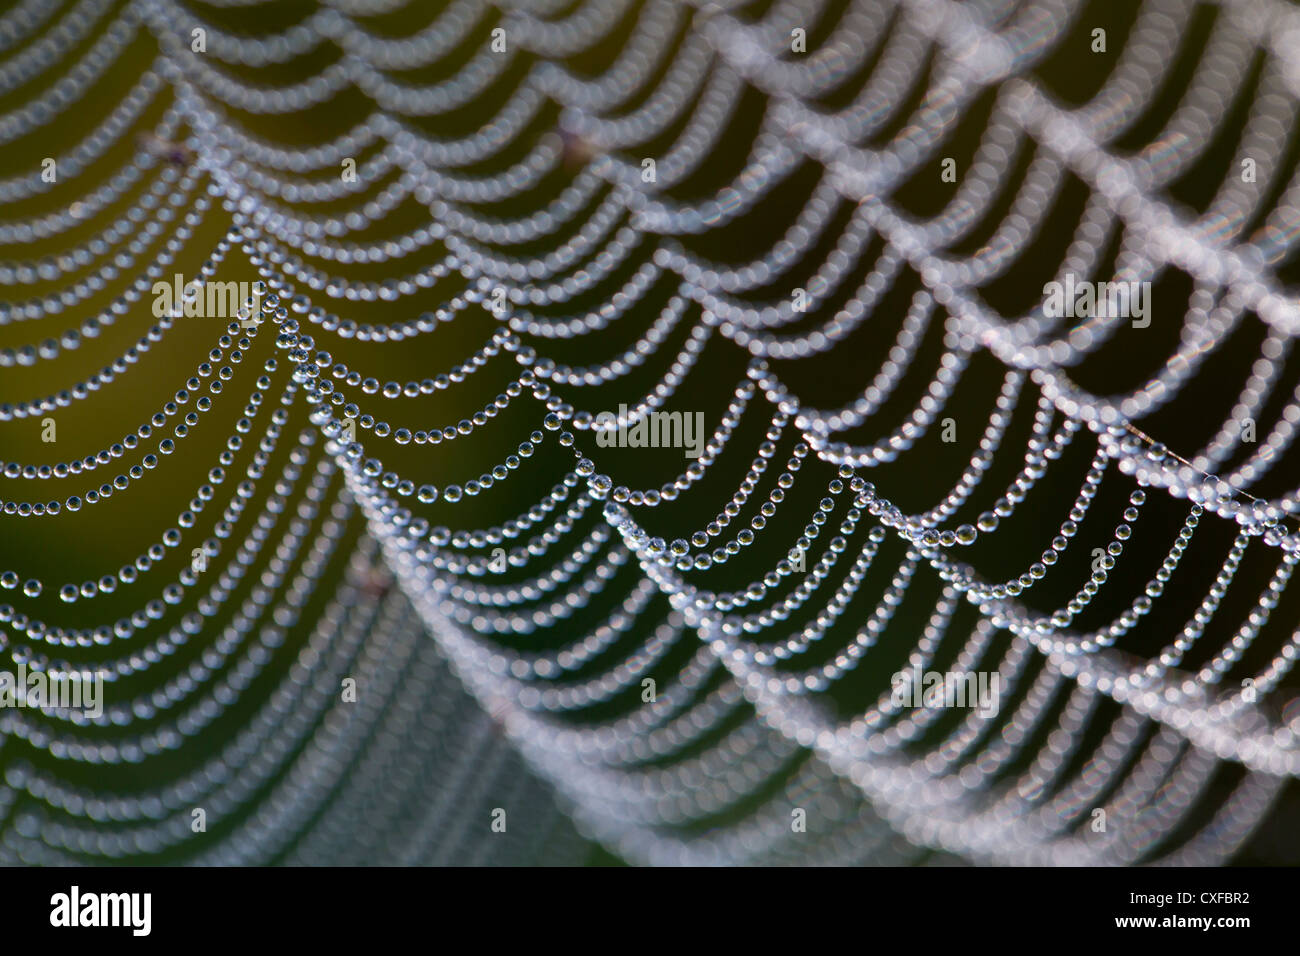 Spider's Web; with dew drops; UK - Stock Image